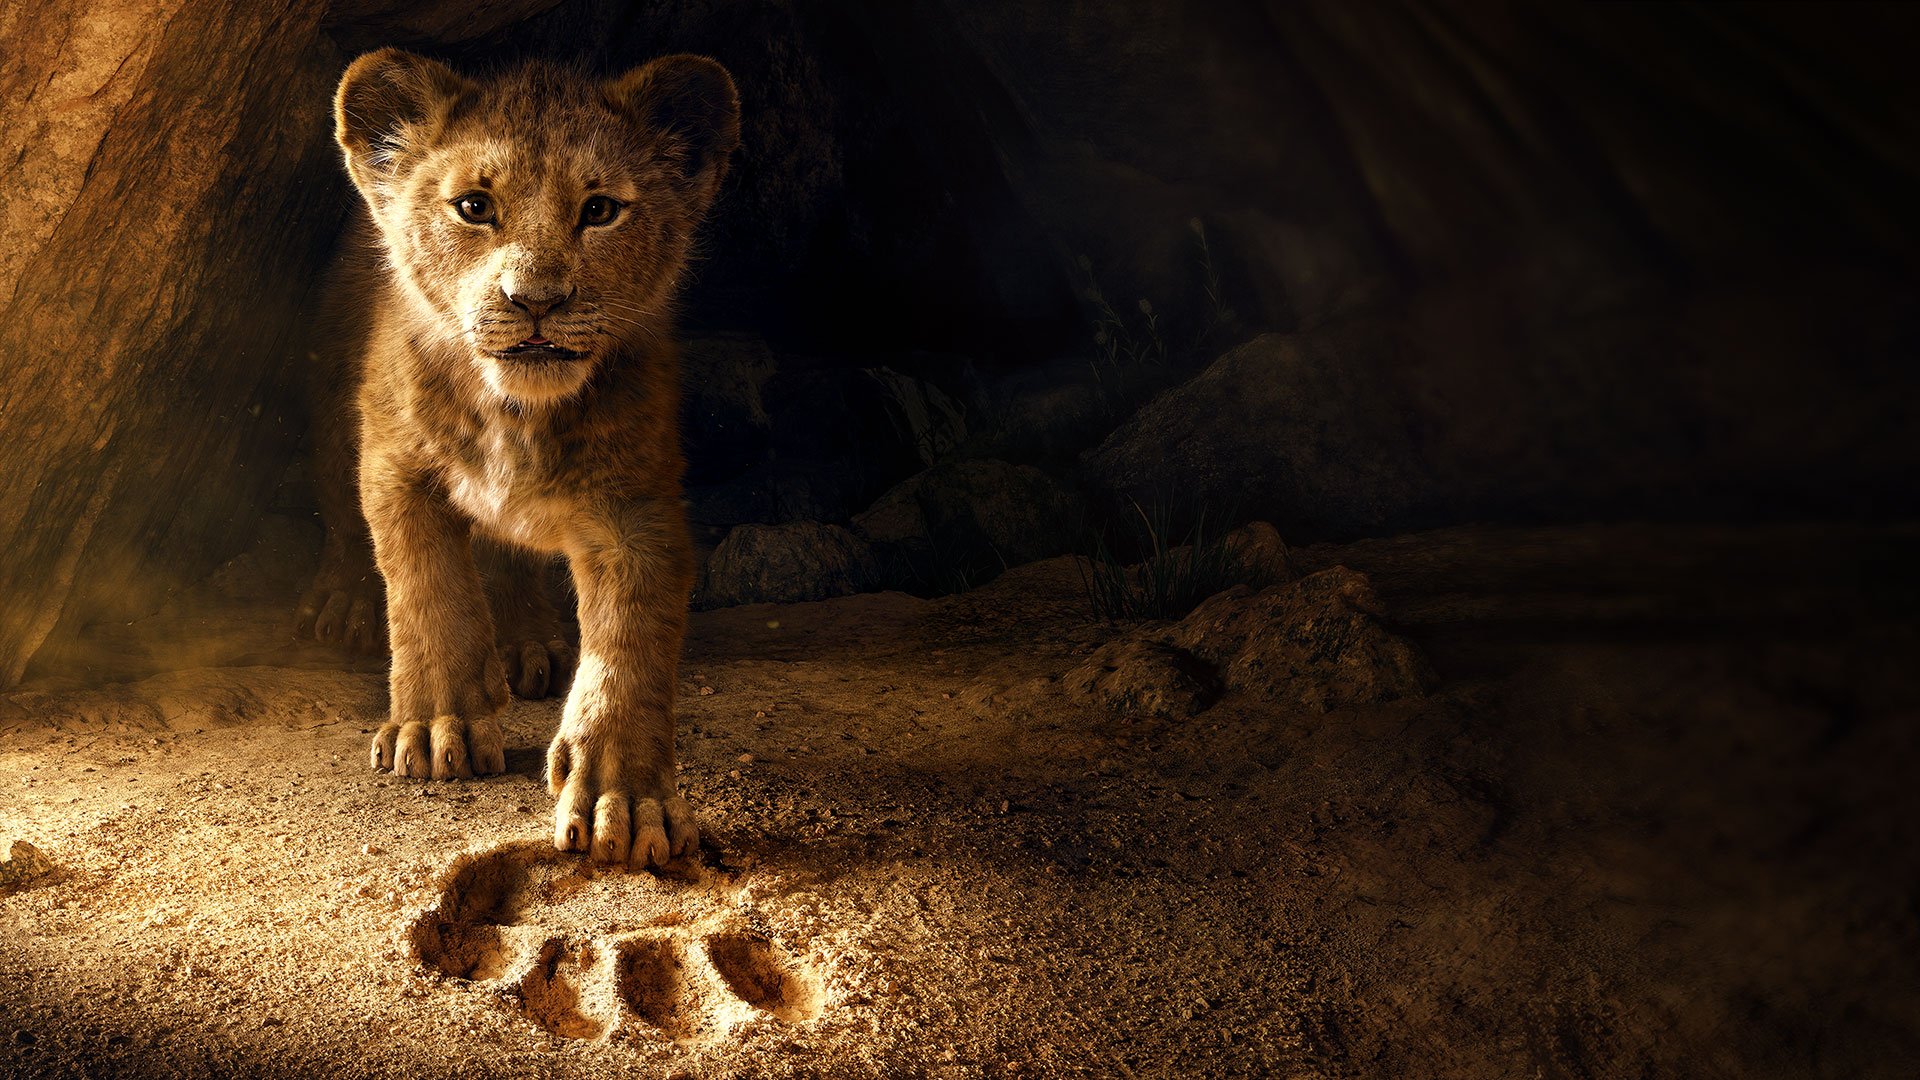 Enter To Win A Digital Copy Of The Lion King